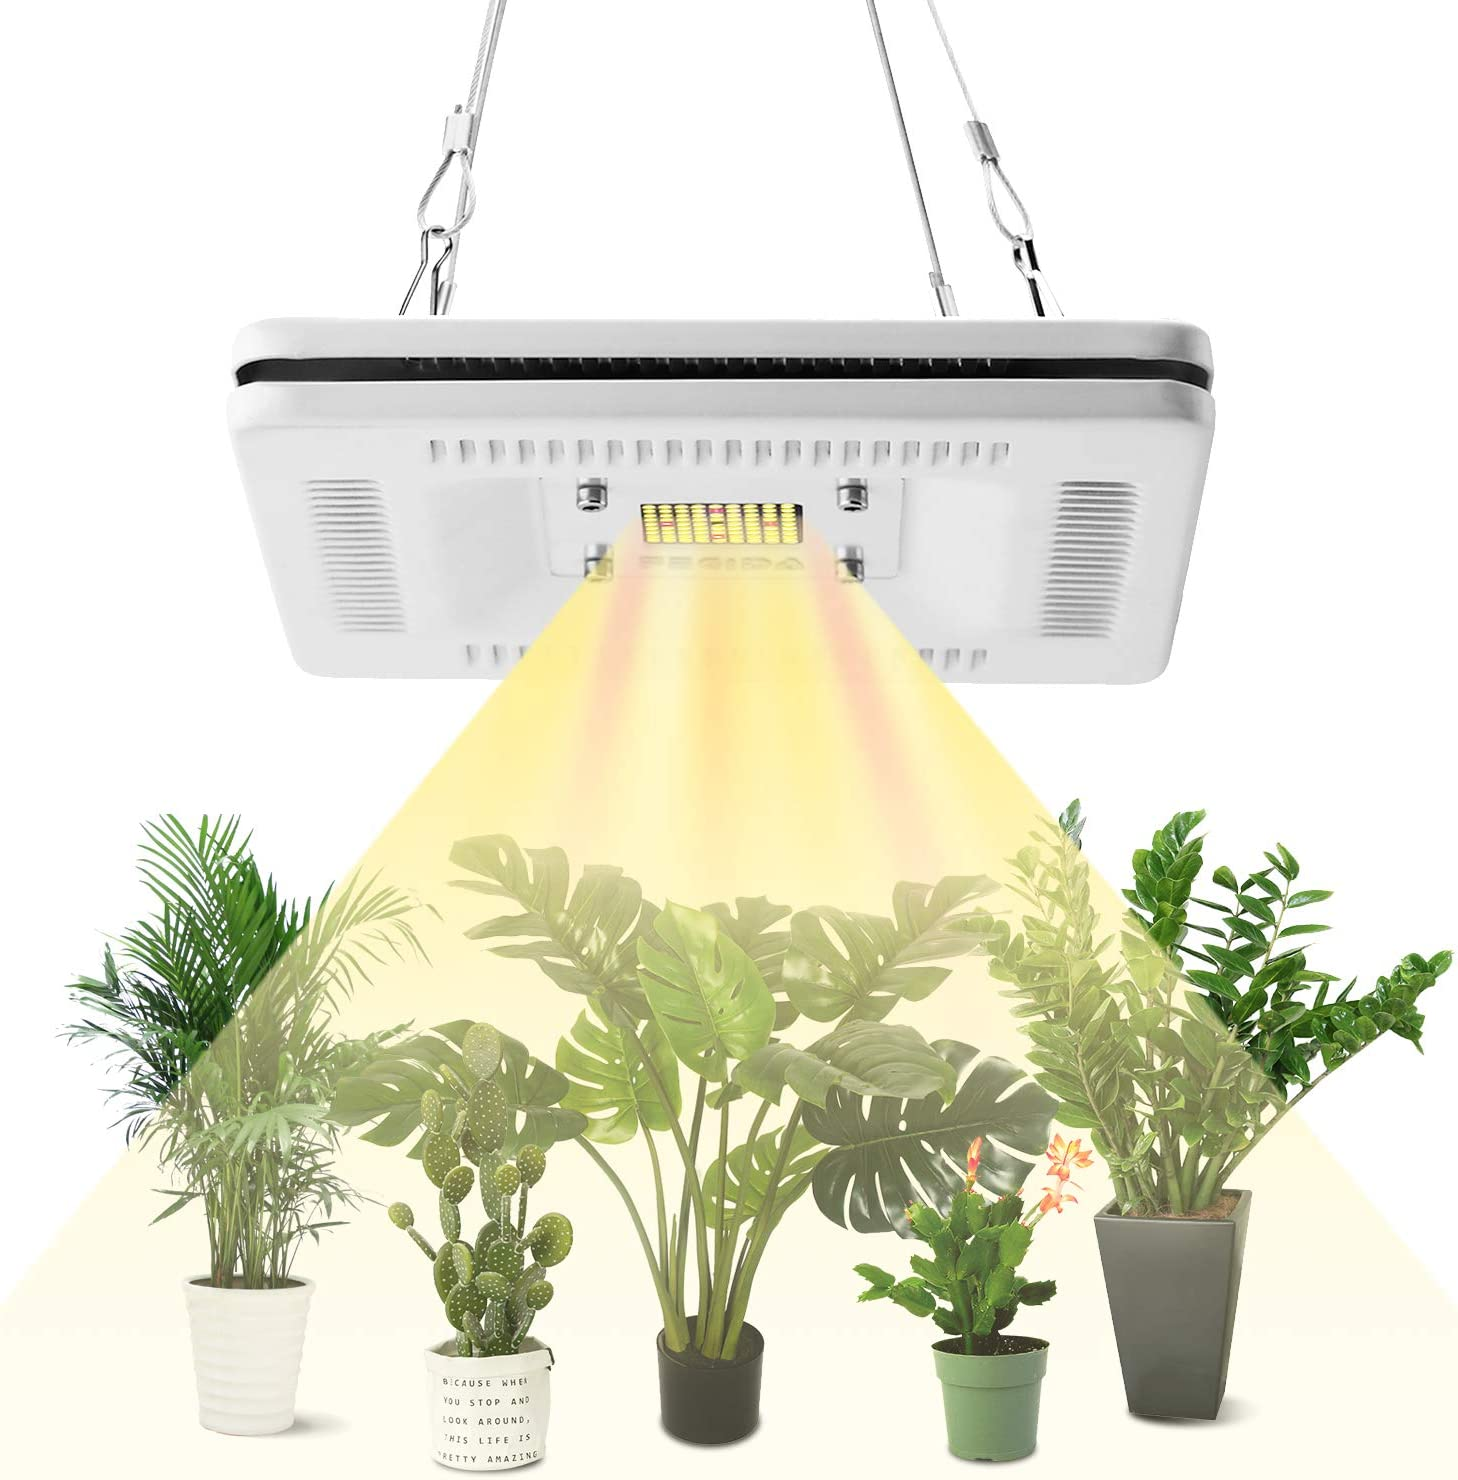 FECiDA 50W LED Grow Light para plantas de interior, 250W CFL HPS Grow Lights Equivalente, impermeable LED Grow Plant Light, profesional Sunlike Full Spectrum Grow Lamp: Amazon.es: Iluminación